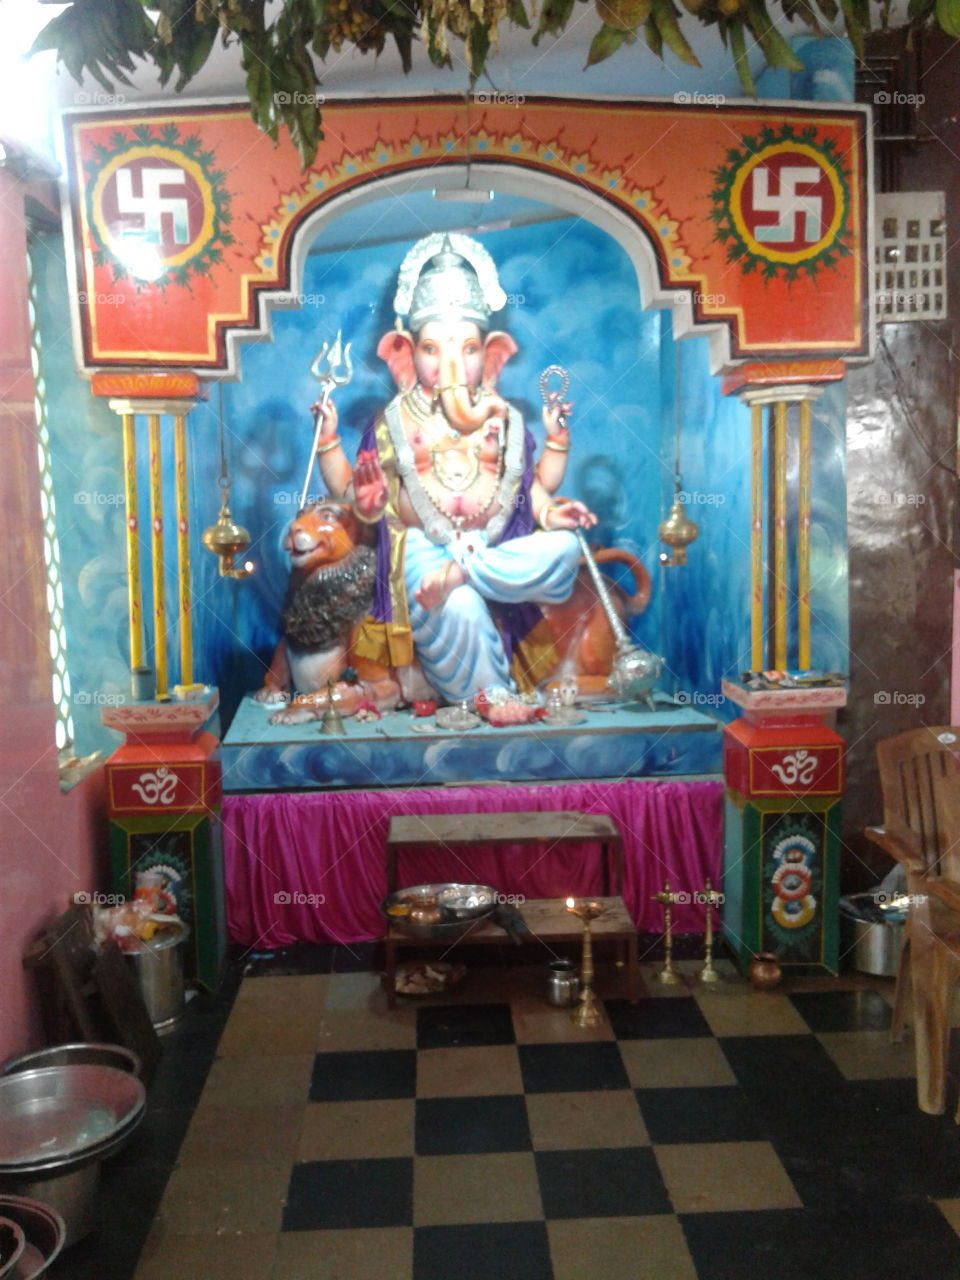 Lord ganesha statue and decorations for festival